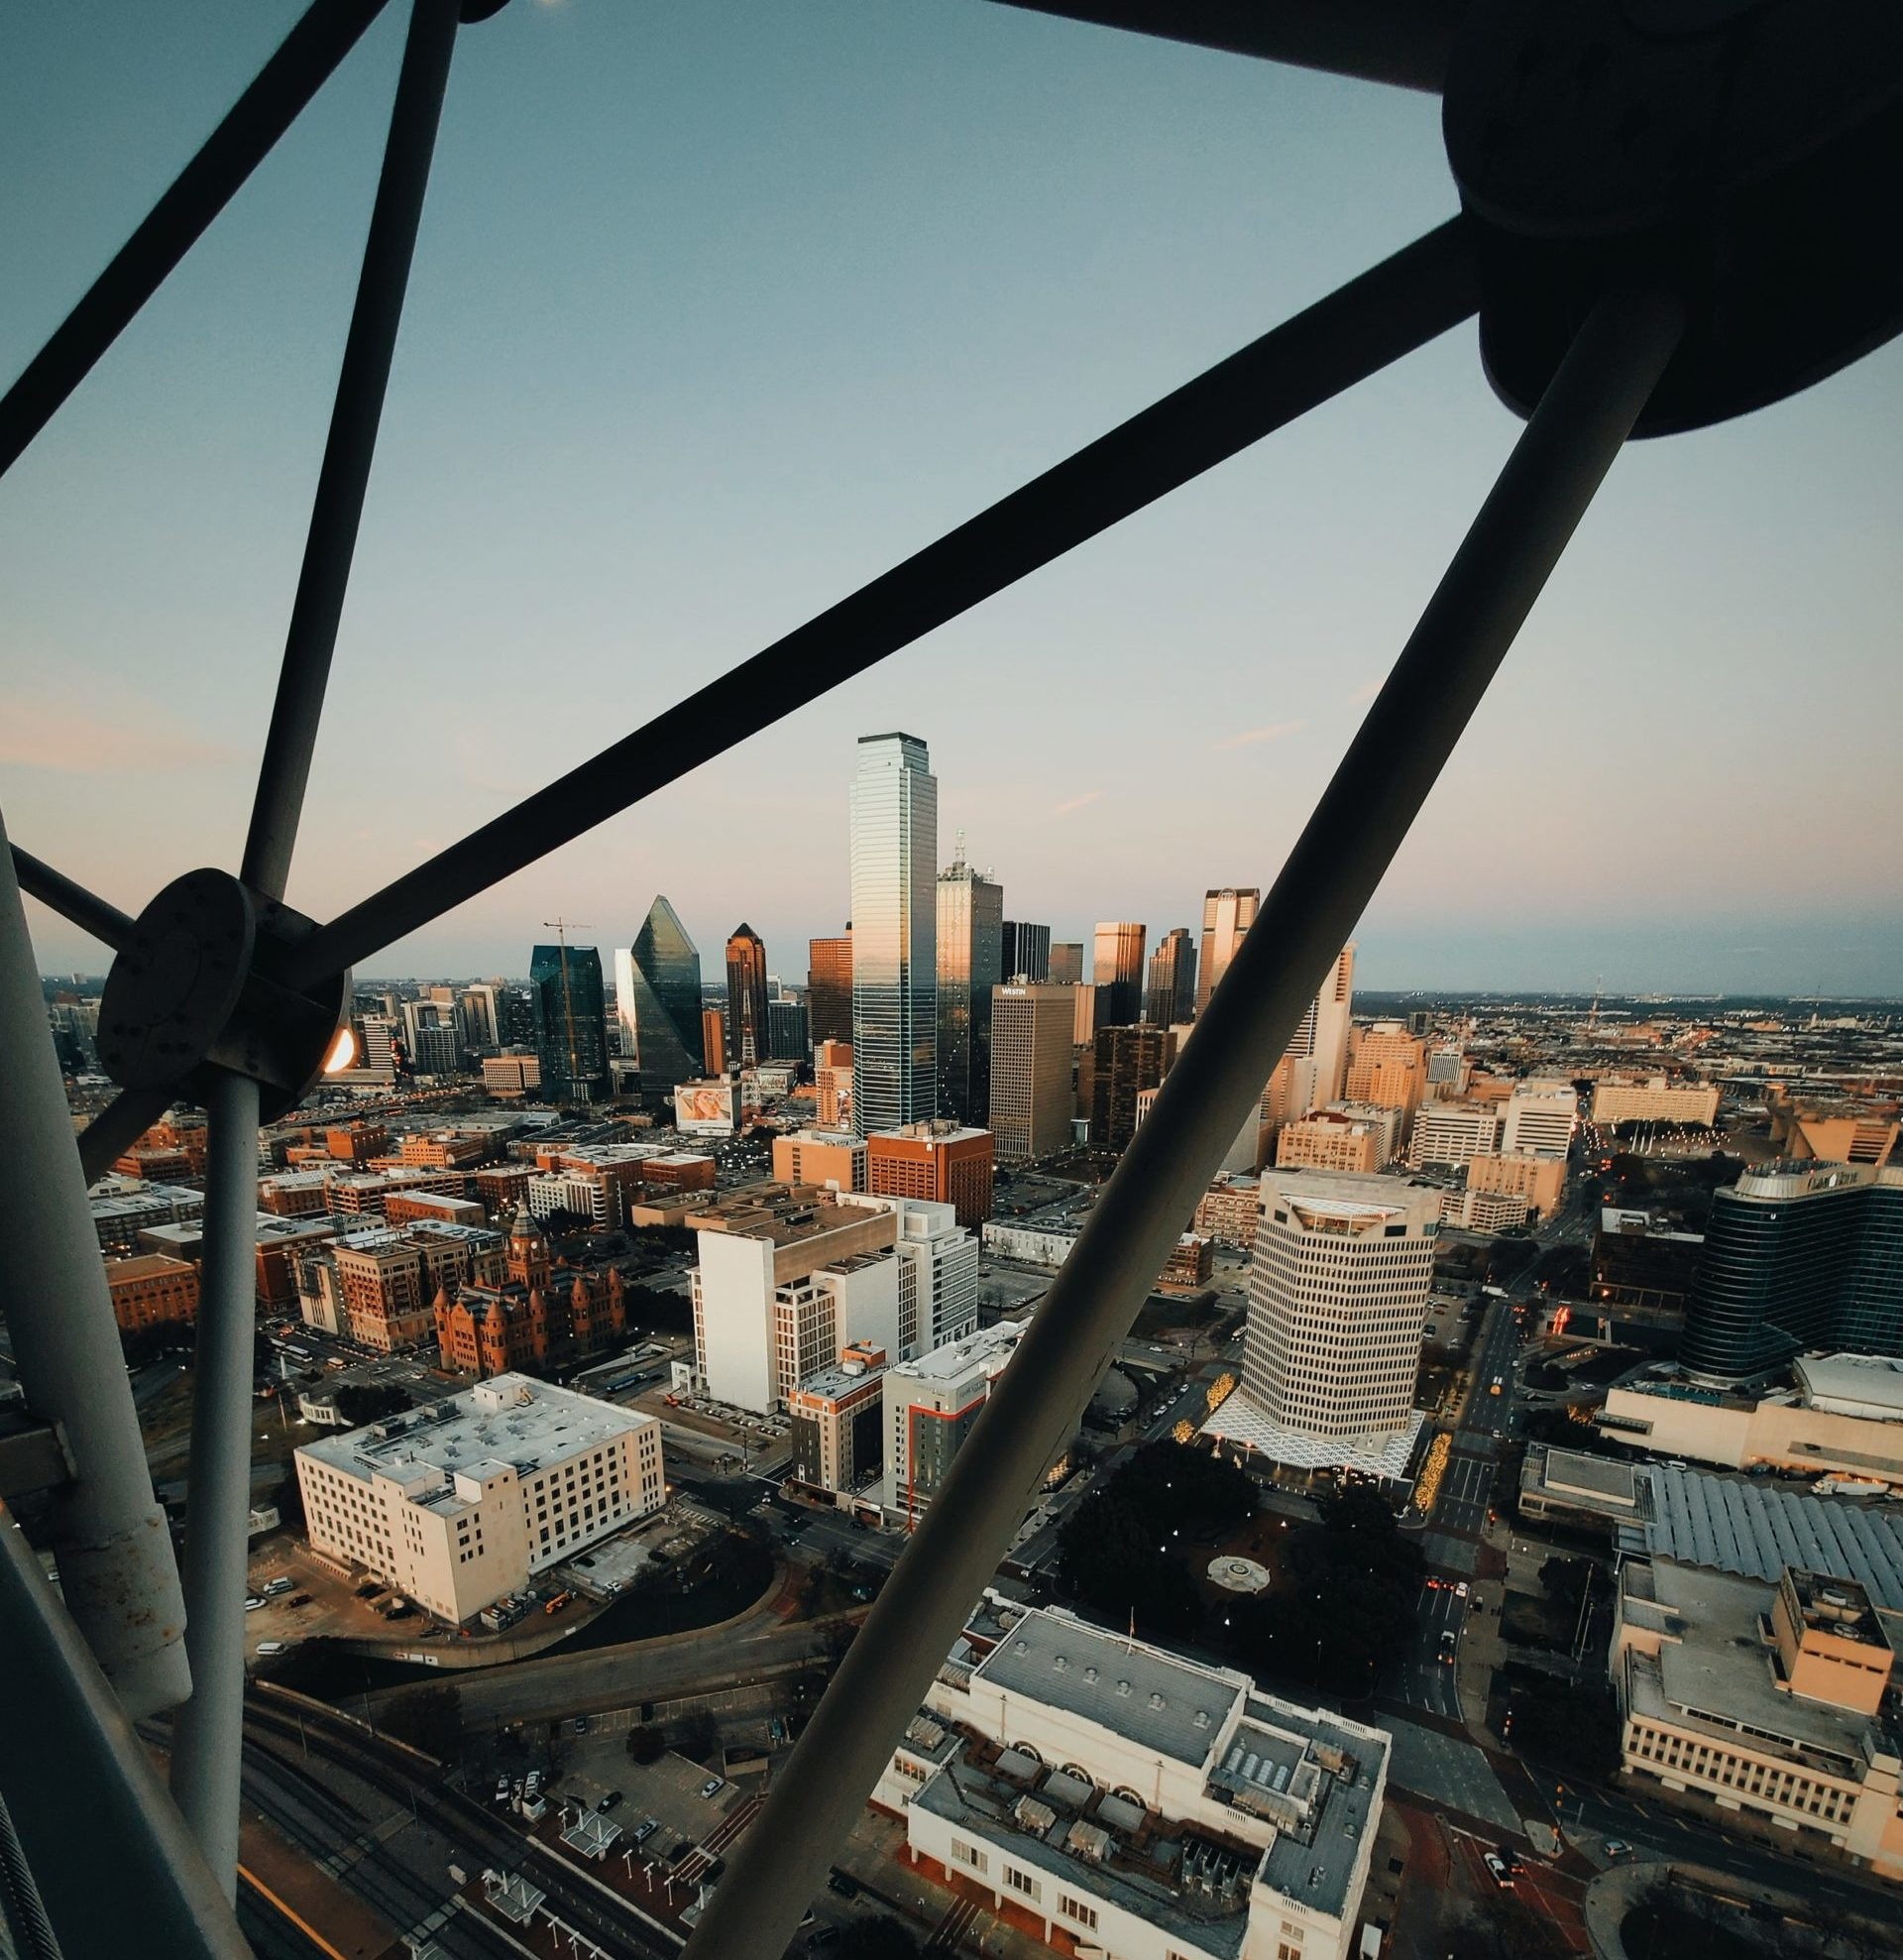 View from Reunion Tower observation deck